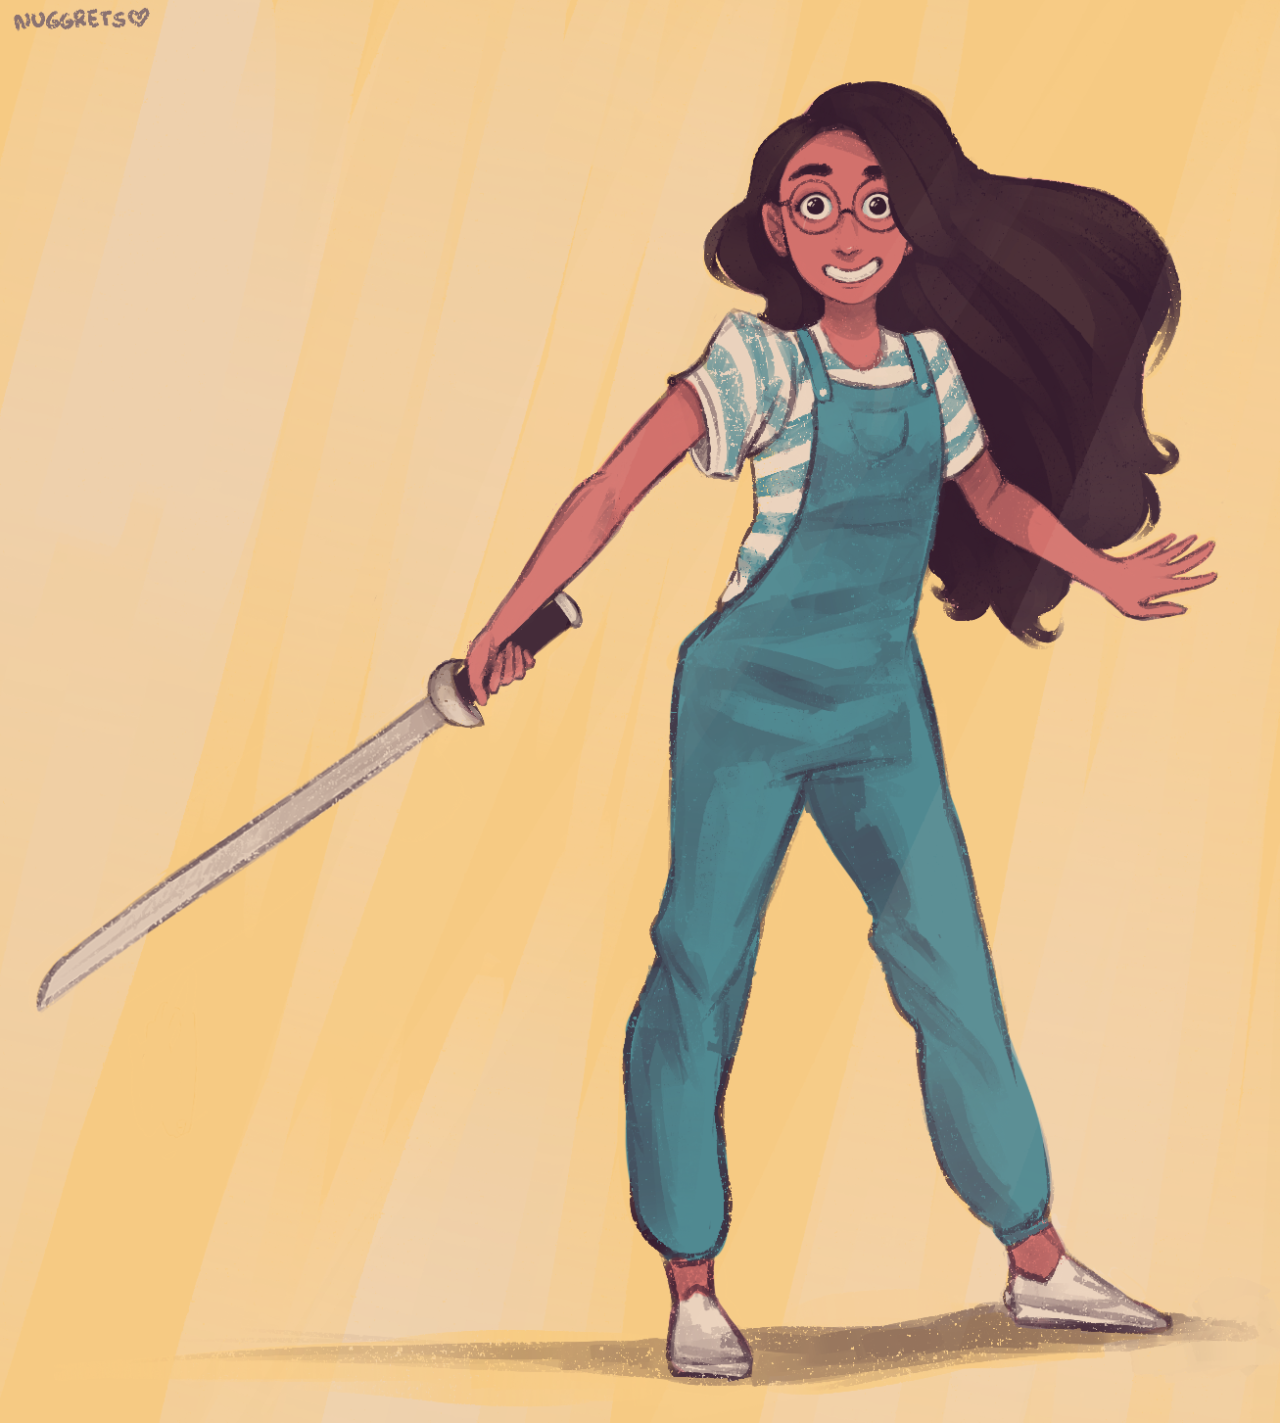 connie maheswaran in #22, as requested by spatialheather (i darkened the pink tone slightly because she was looking way too pale, aha)